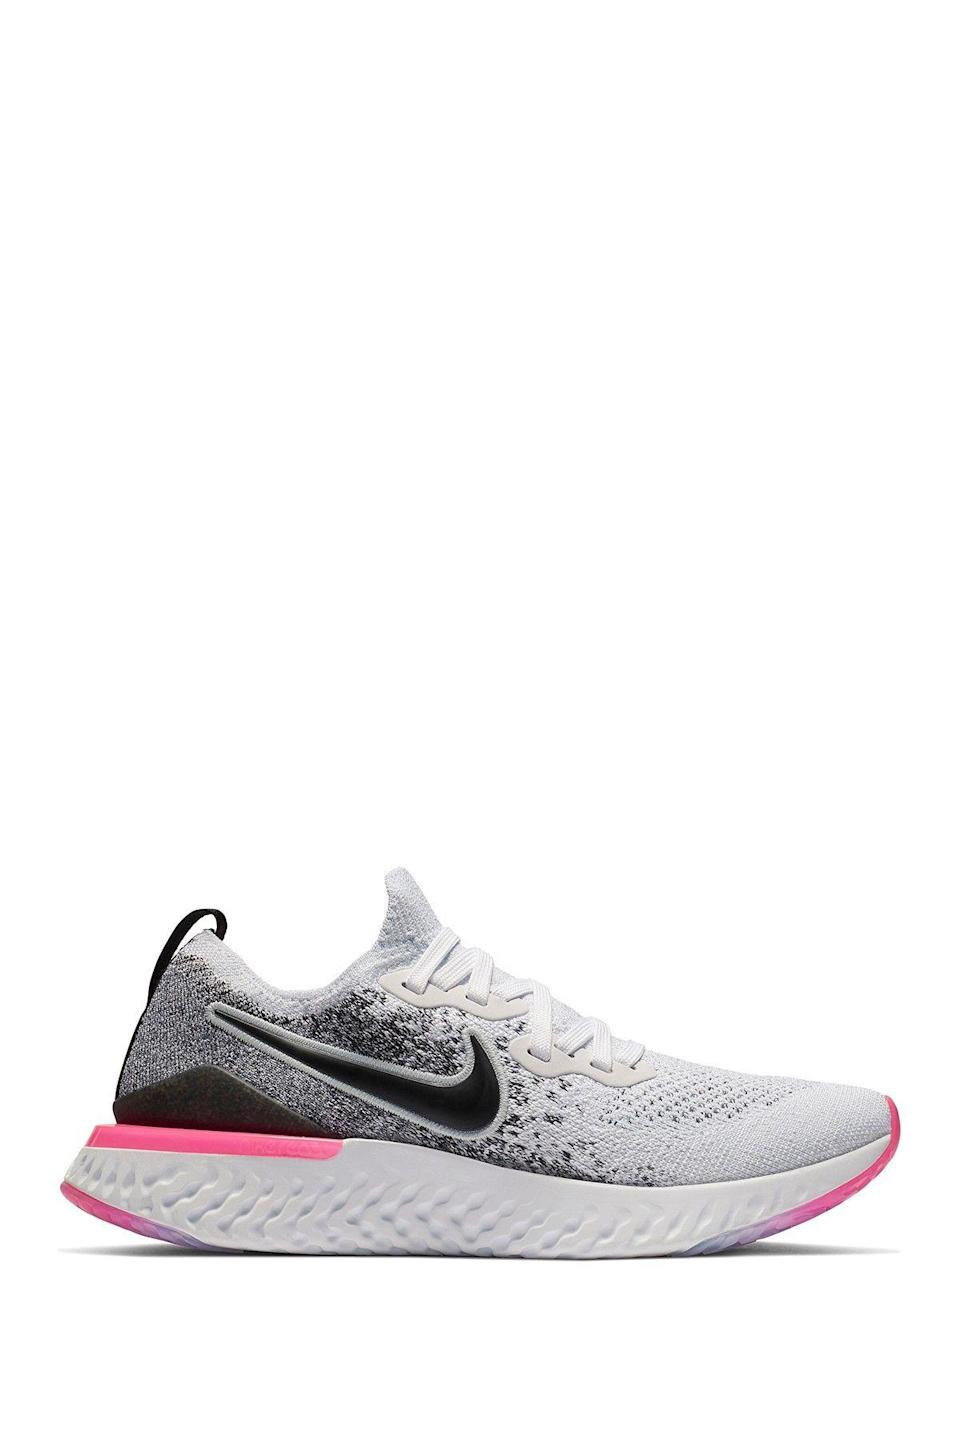 """<p><strong>Nike</strong></p><p>nordstromrack.com</p><p><a href=""""https://go.redirectingat.com?id=74968X1596630&url=https%3A%2F%2Fwww.nordstromrack.com%2Fshop%2Fproduct%2F2963805&sref=https%3A%2F%2Fwww.womenshealthmag.com%2Fstyle%2Fg33534500%2Fnordstrom-rack-nike-sale%2F"""" rel=""""nofollow noopener"""" target=""""_blank"""" data-ylk=""""slk:Shop Now"""" class=""""link rapid-noclick-resp"""">Shop Now</a></p><p><del>$150</del><strong><br>$59.97</strong></p><p>Thanks to its responsive Nike React foam sole, this pair of sneakers will literally add some pep to your step. Plus, it's not every day you find an awesome pair for nearly $100 off the asking price.<strong><br></strong></p>"""